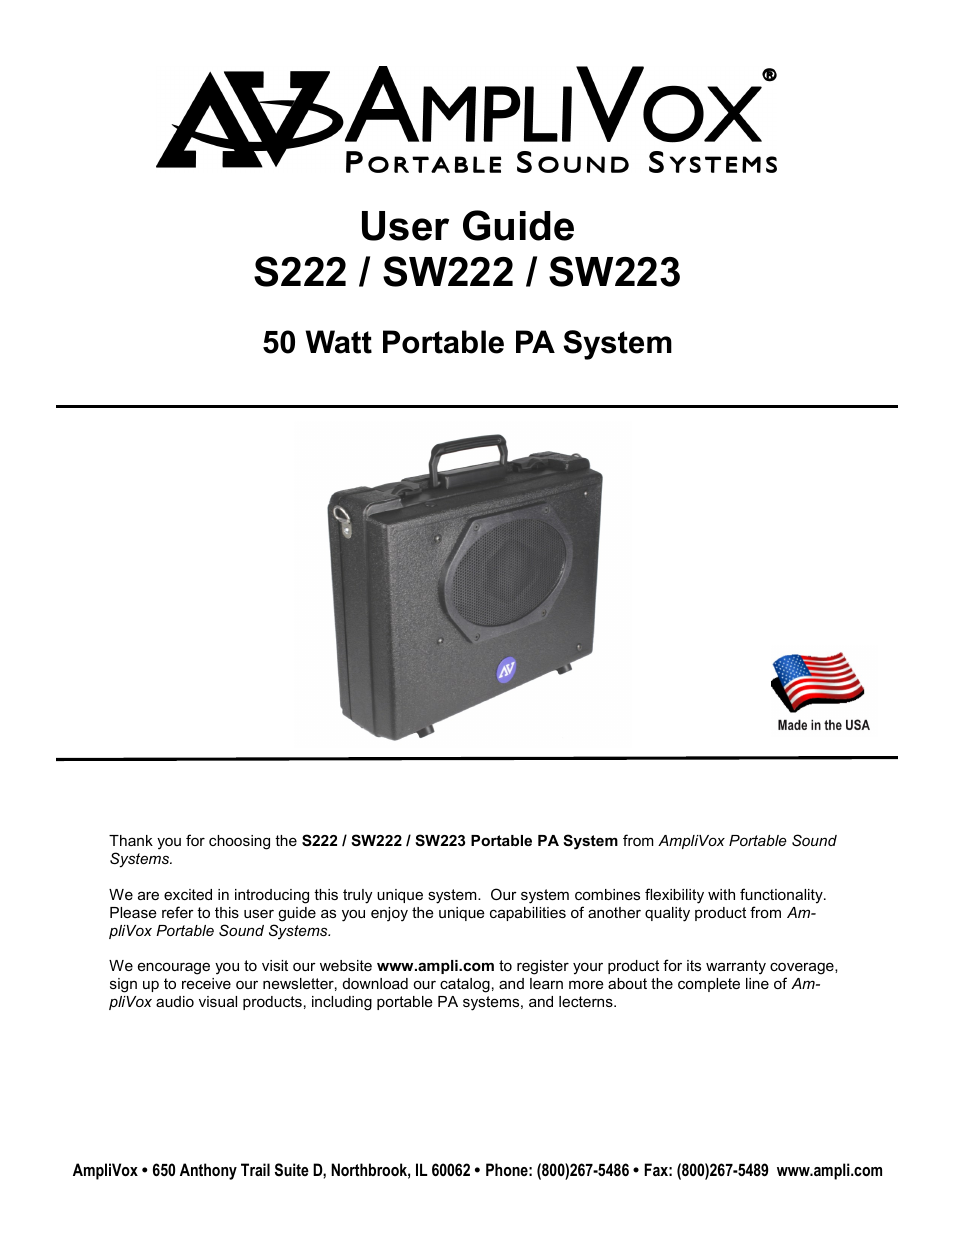 Amplivox User Manual Ford Yt16h Wiring Diagram Array Sw223 7 Pages Also For S223 Sw222 S222 Rh Manualsdir